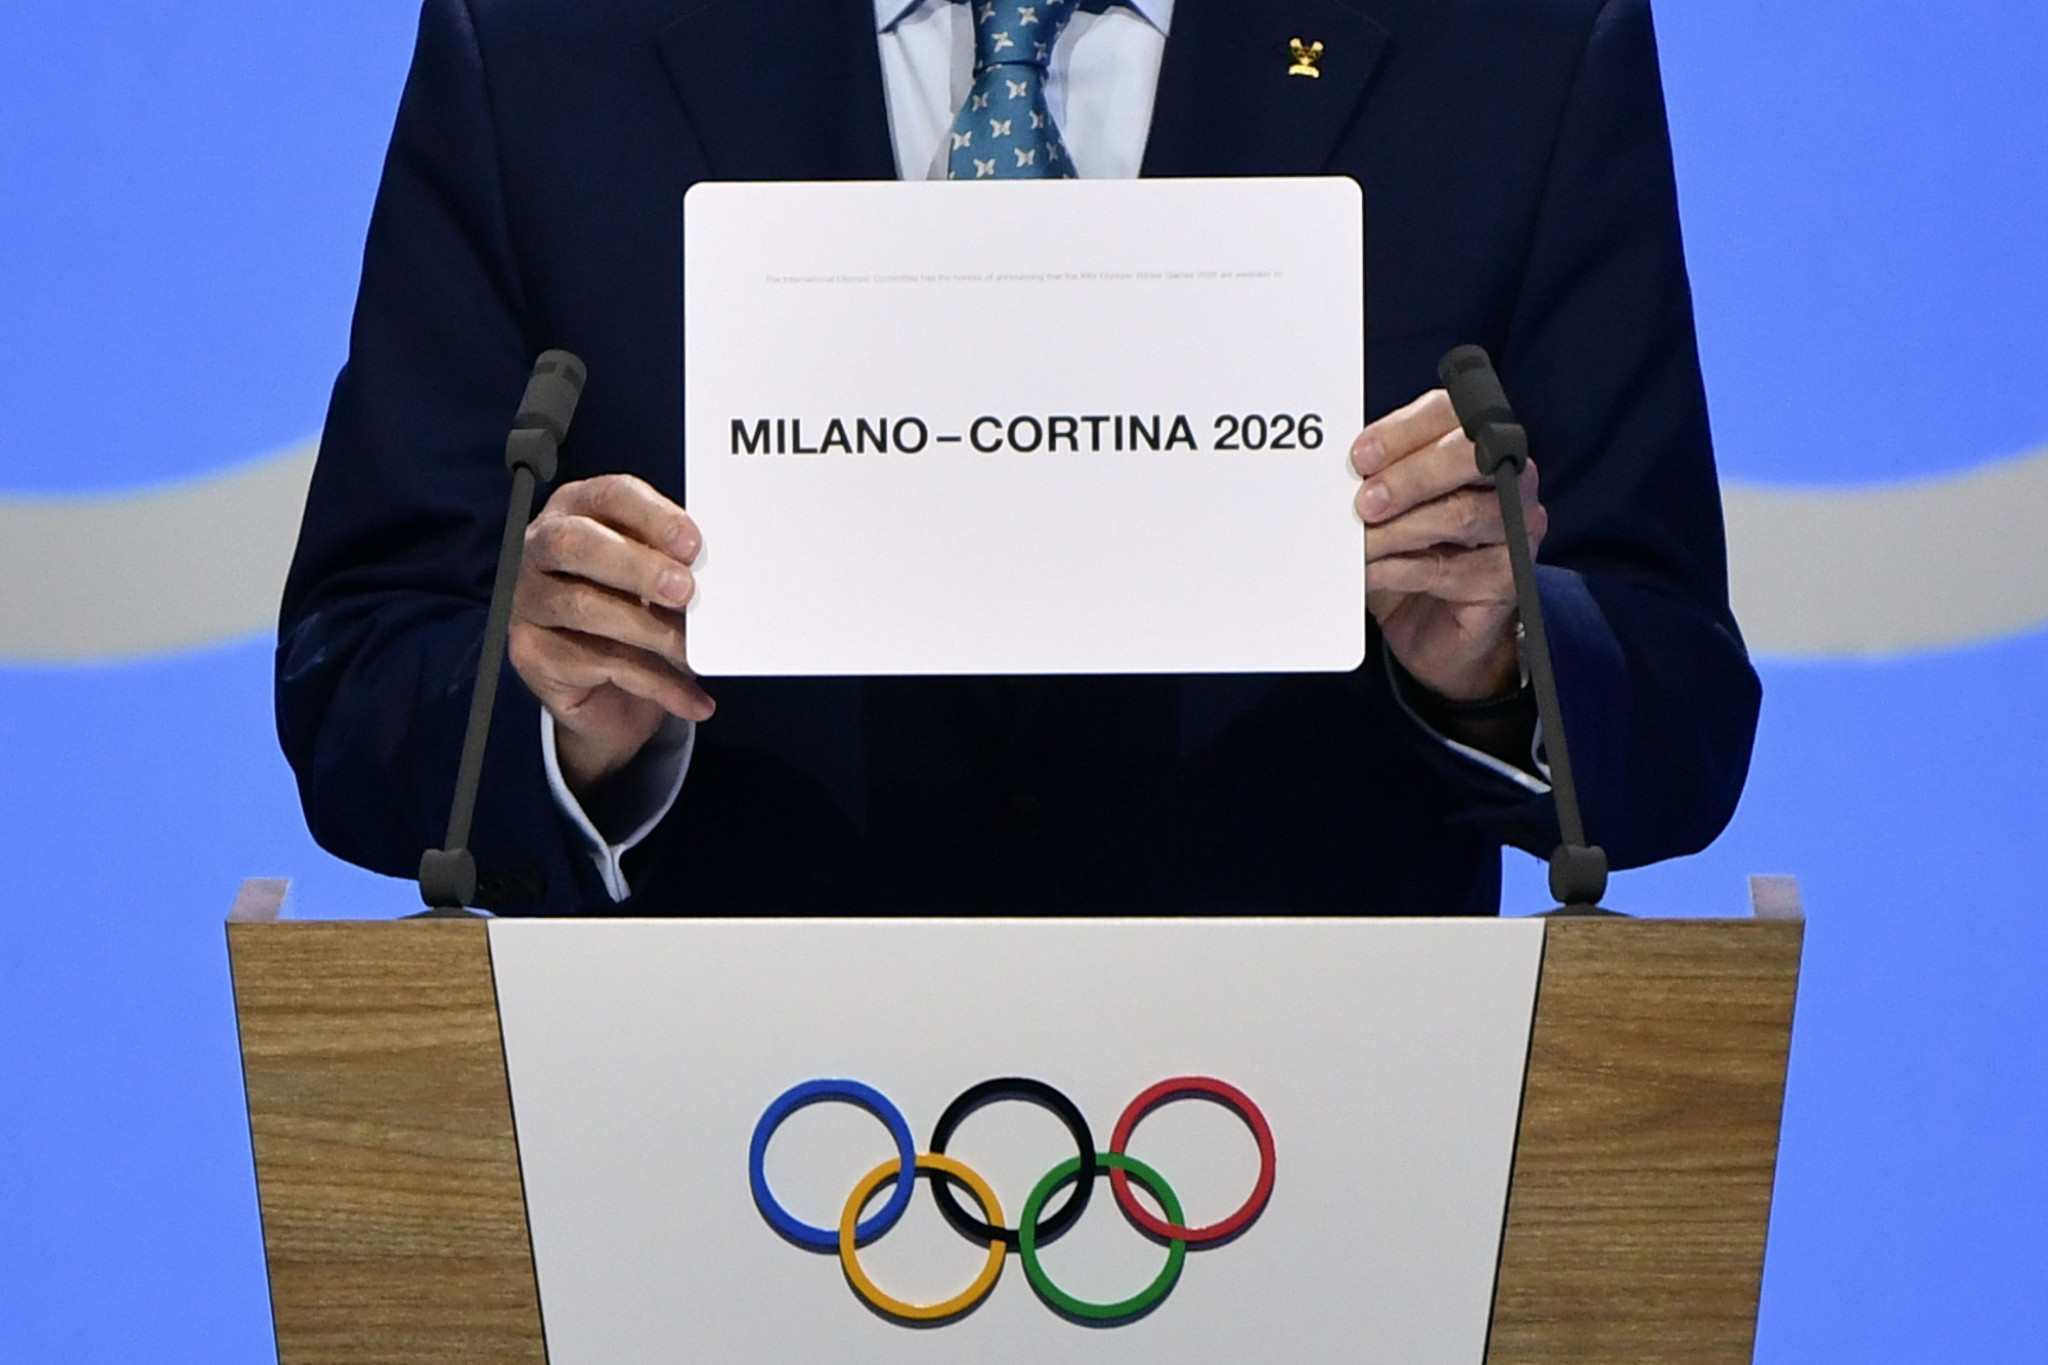 Milan Cortina was awarded the 2026 Winter Olympic and Paralympic Games in June 2019 ©Getty Images